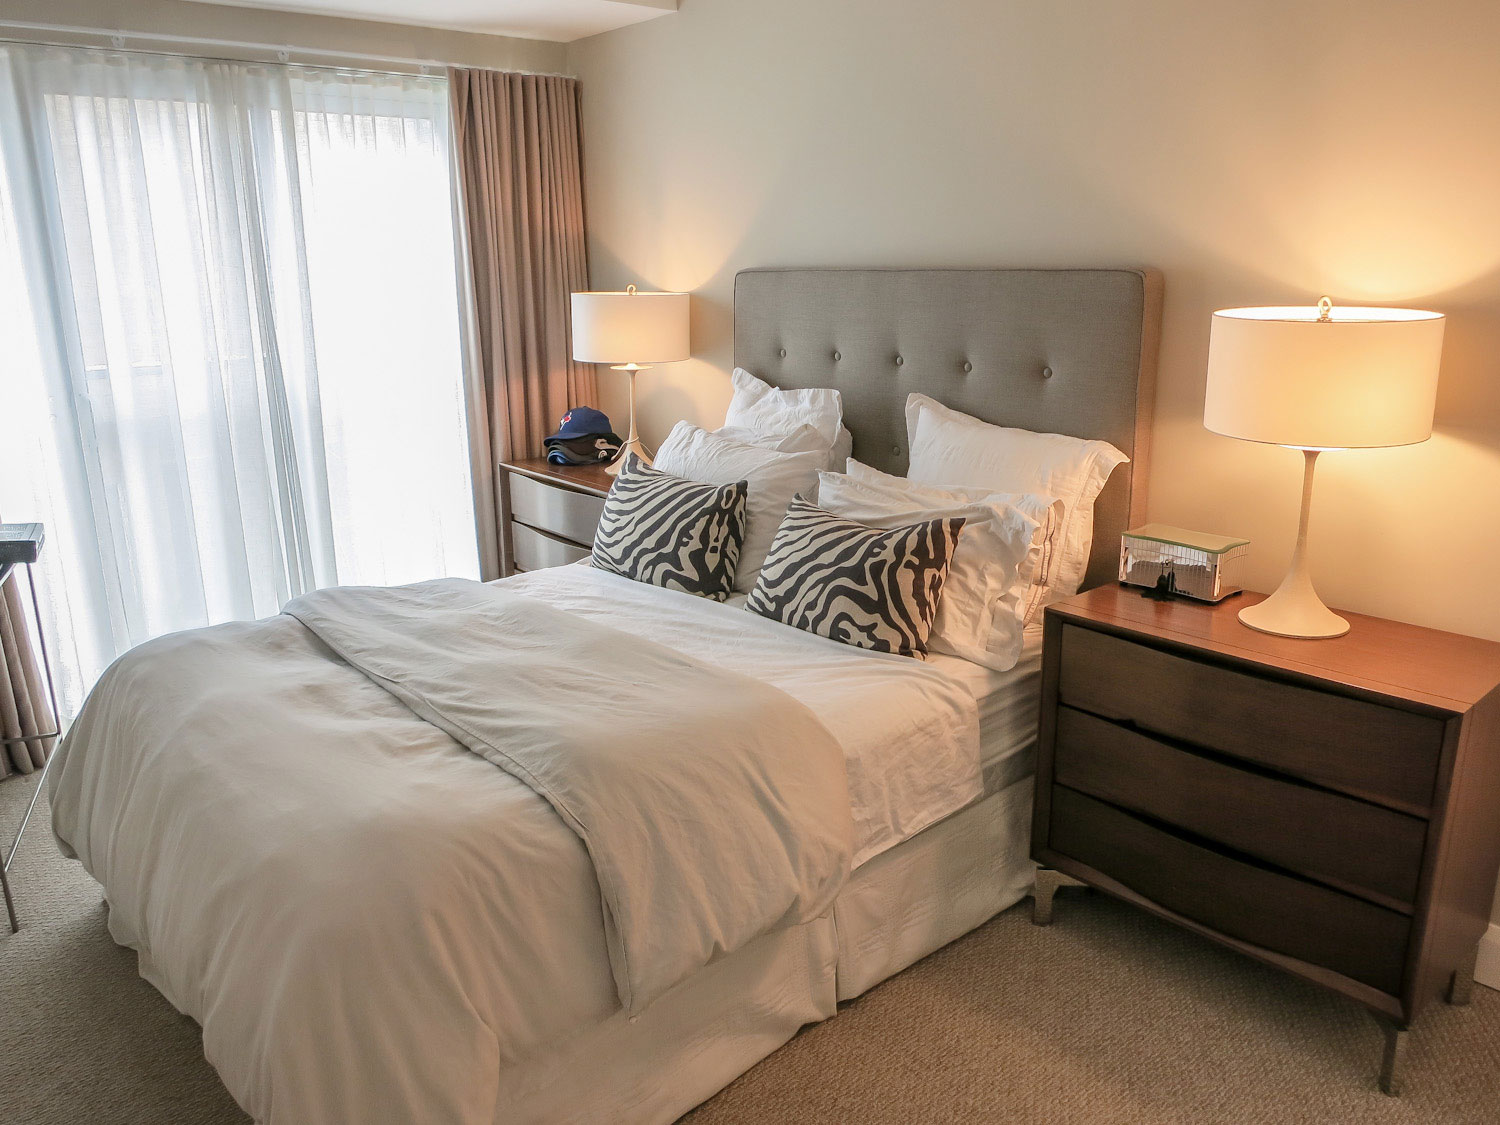 Real-Estate-Photography-Bedroom-2-1500x1125.jpg